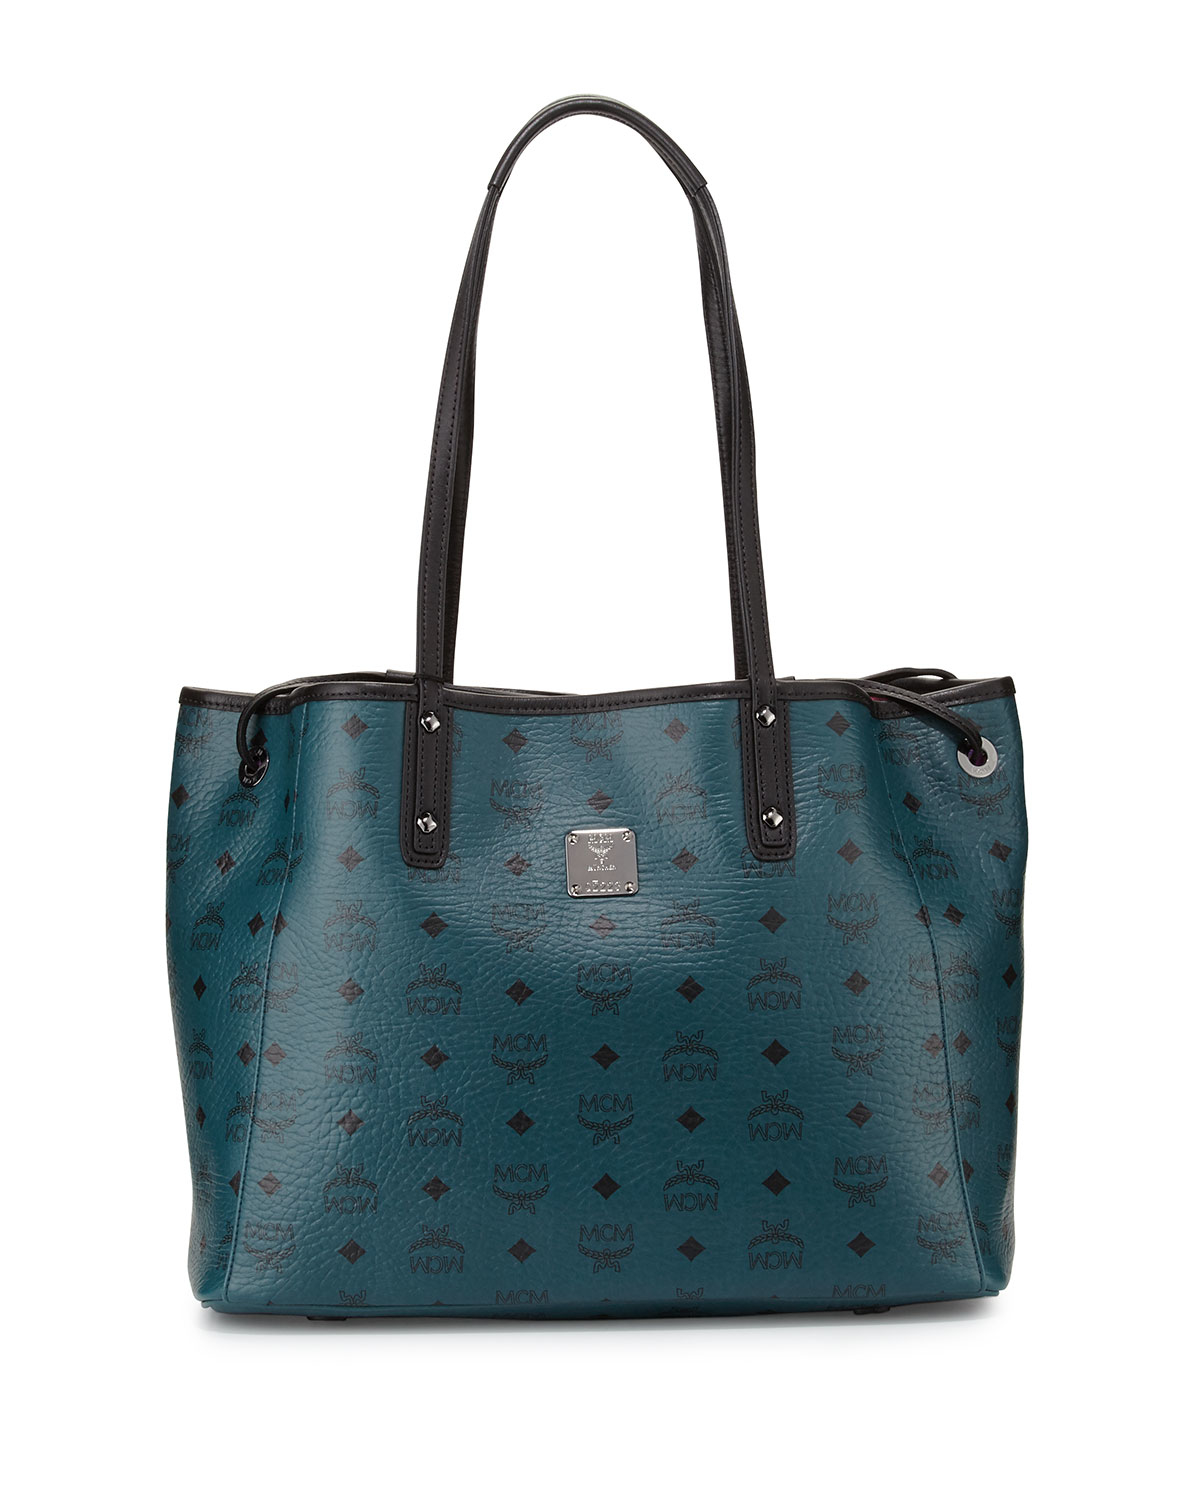 Mcm Galaxy Reversible Medium Shopper Tote Bag in Green | Lyst